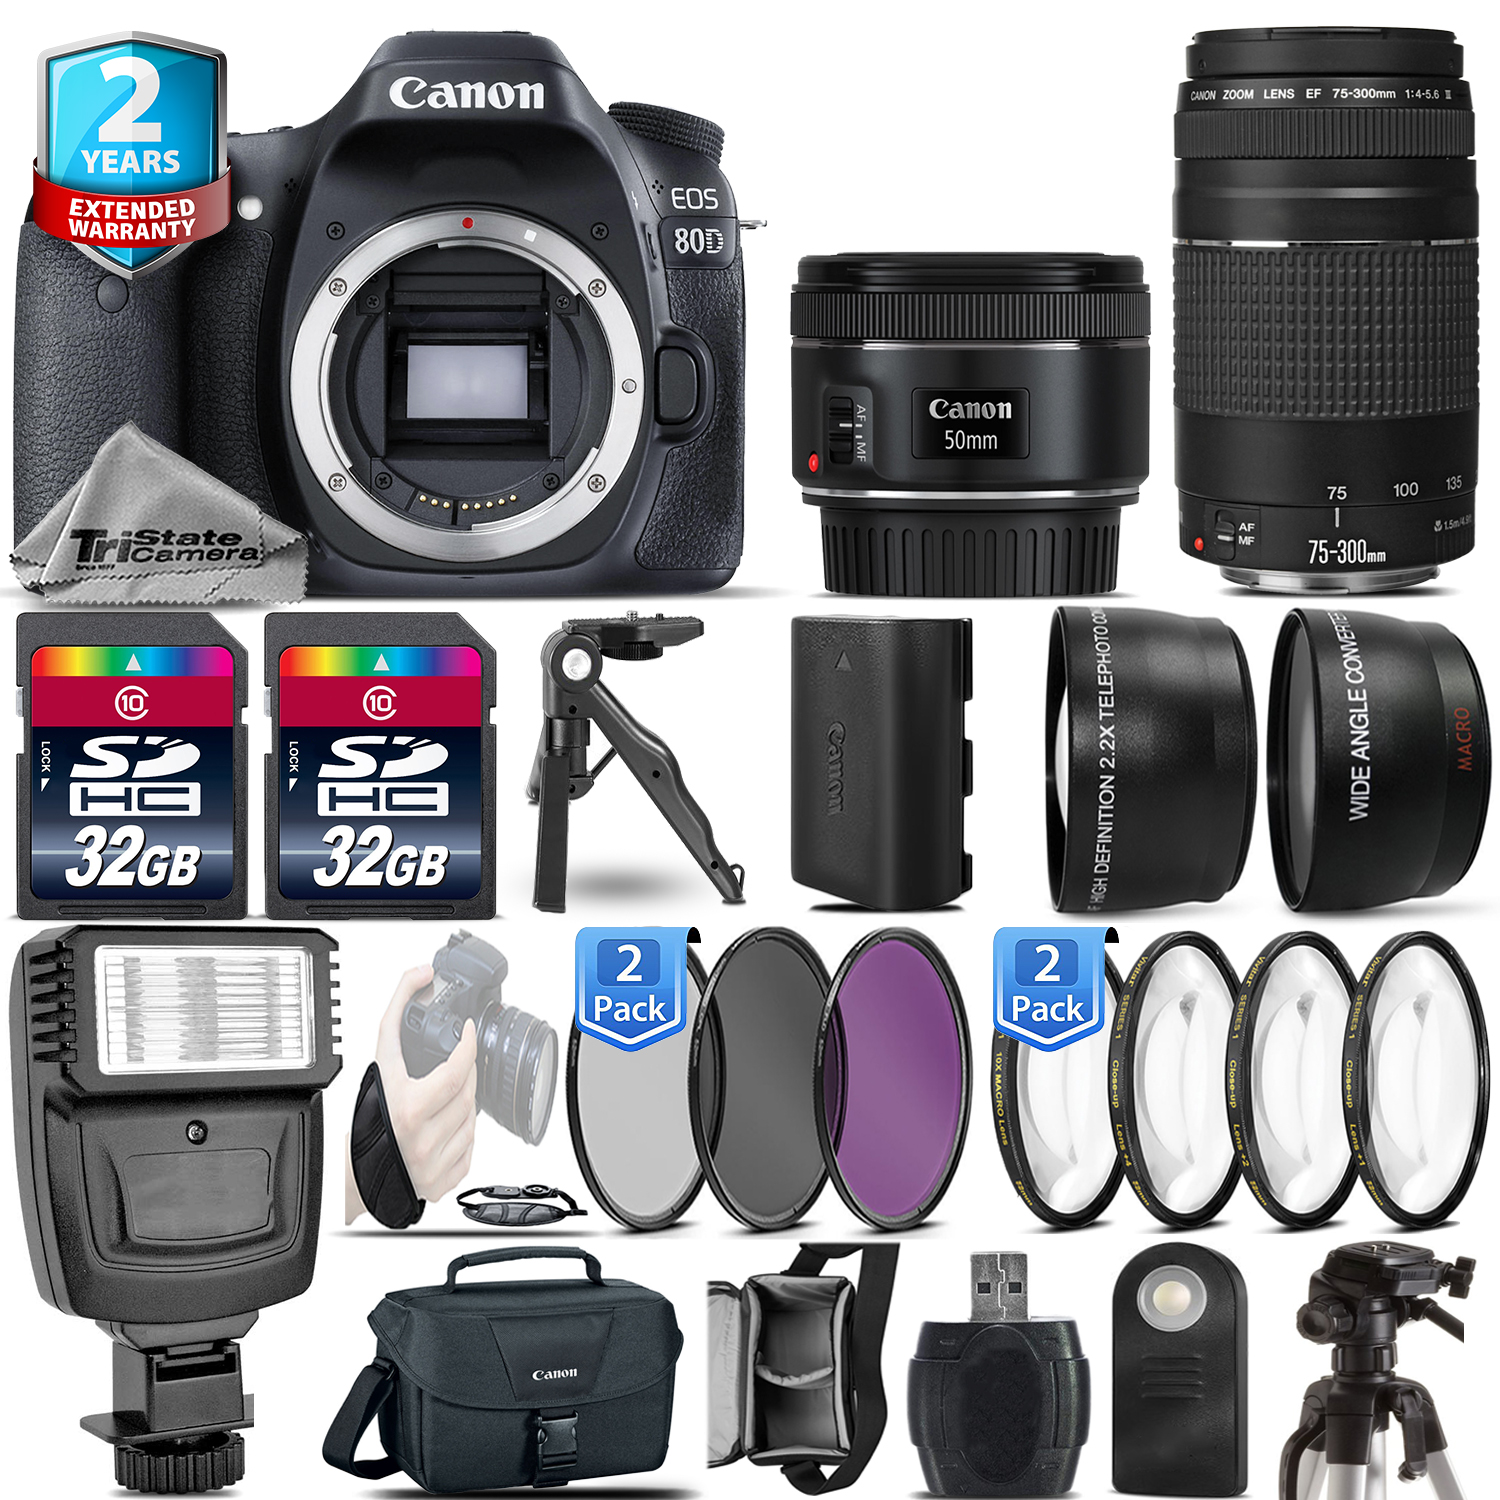 EOS 80D DSLR Camera + 50mm 1.8 STM + 75-300 III + 2yr Warranty - 64GB Kit *FREE SHIPPING*